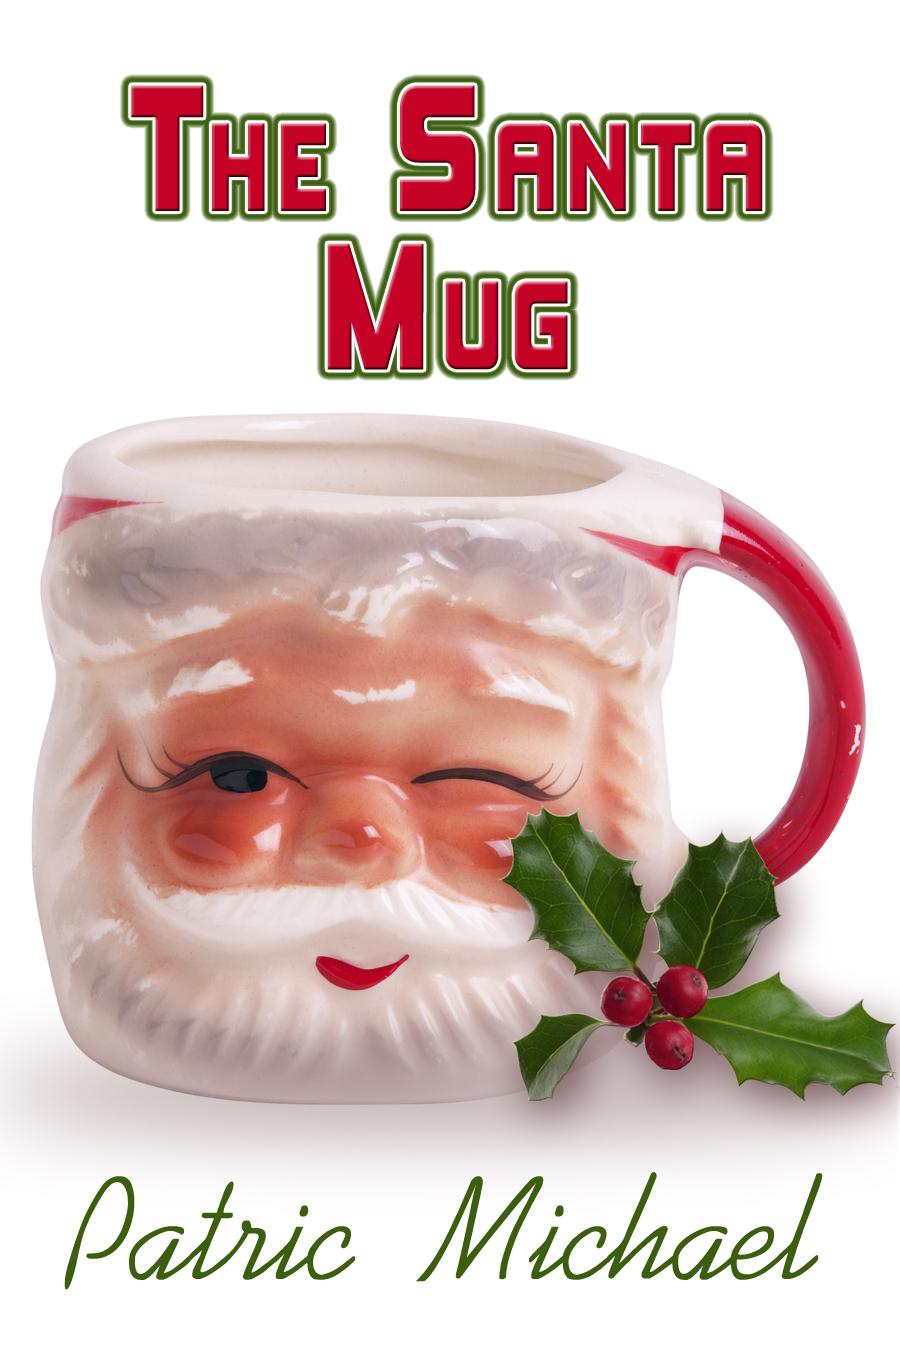 The Santa Mug Patric Michael